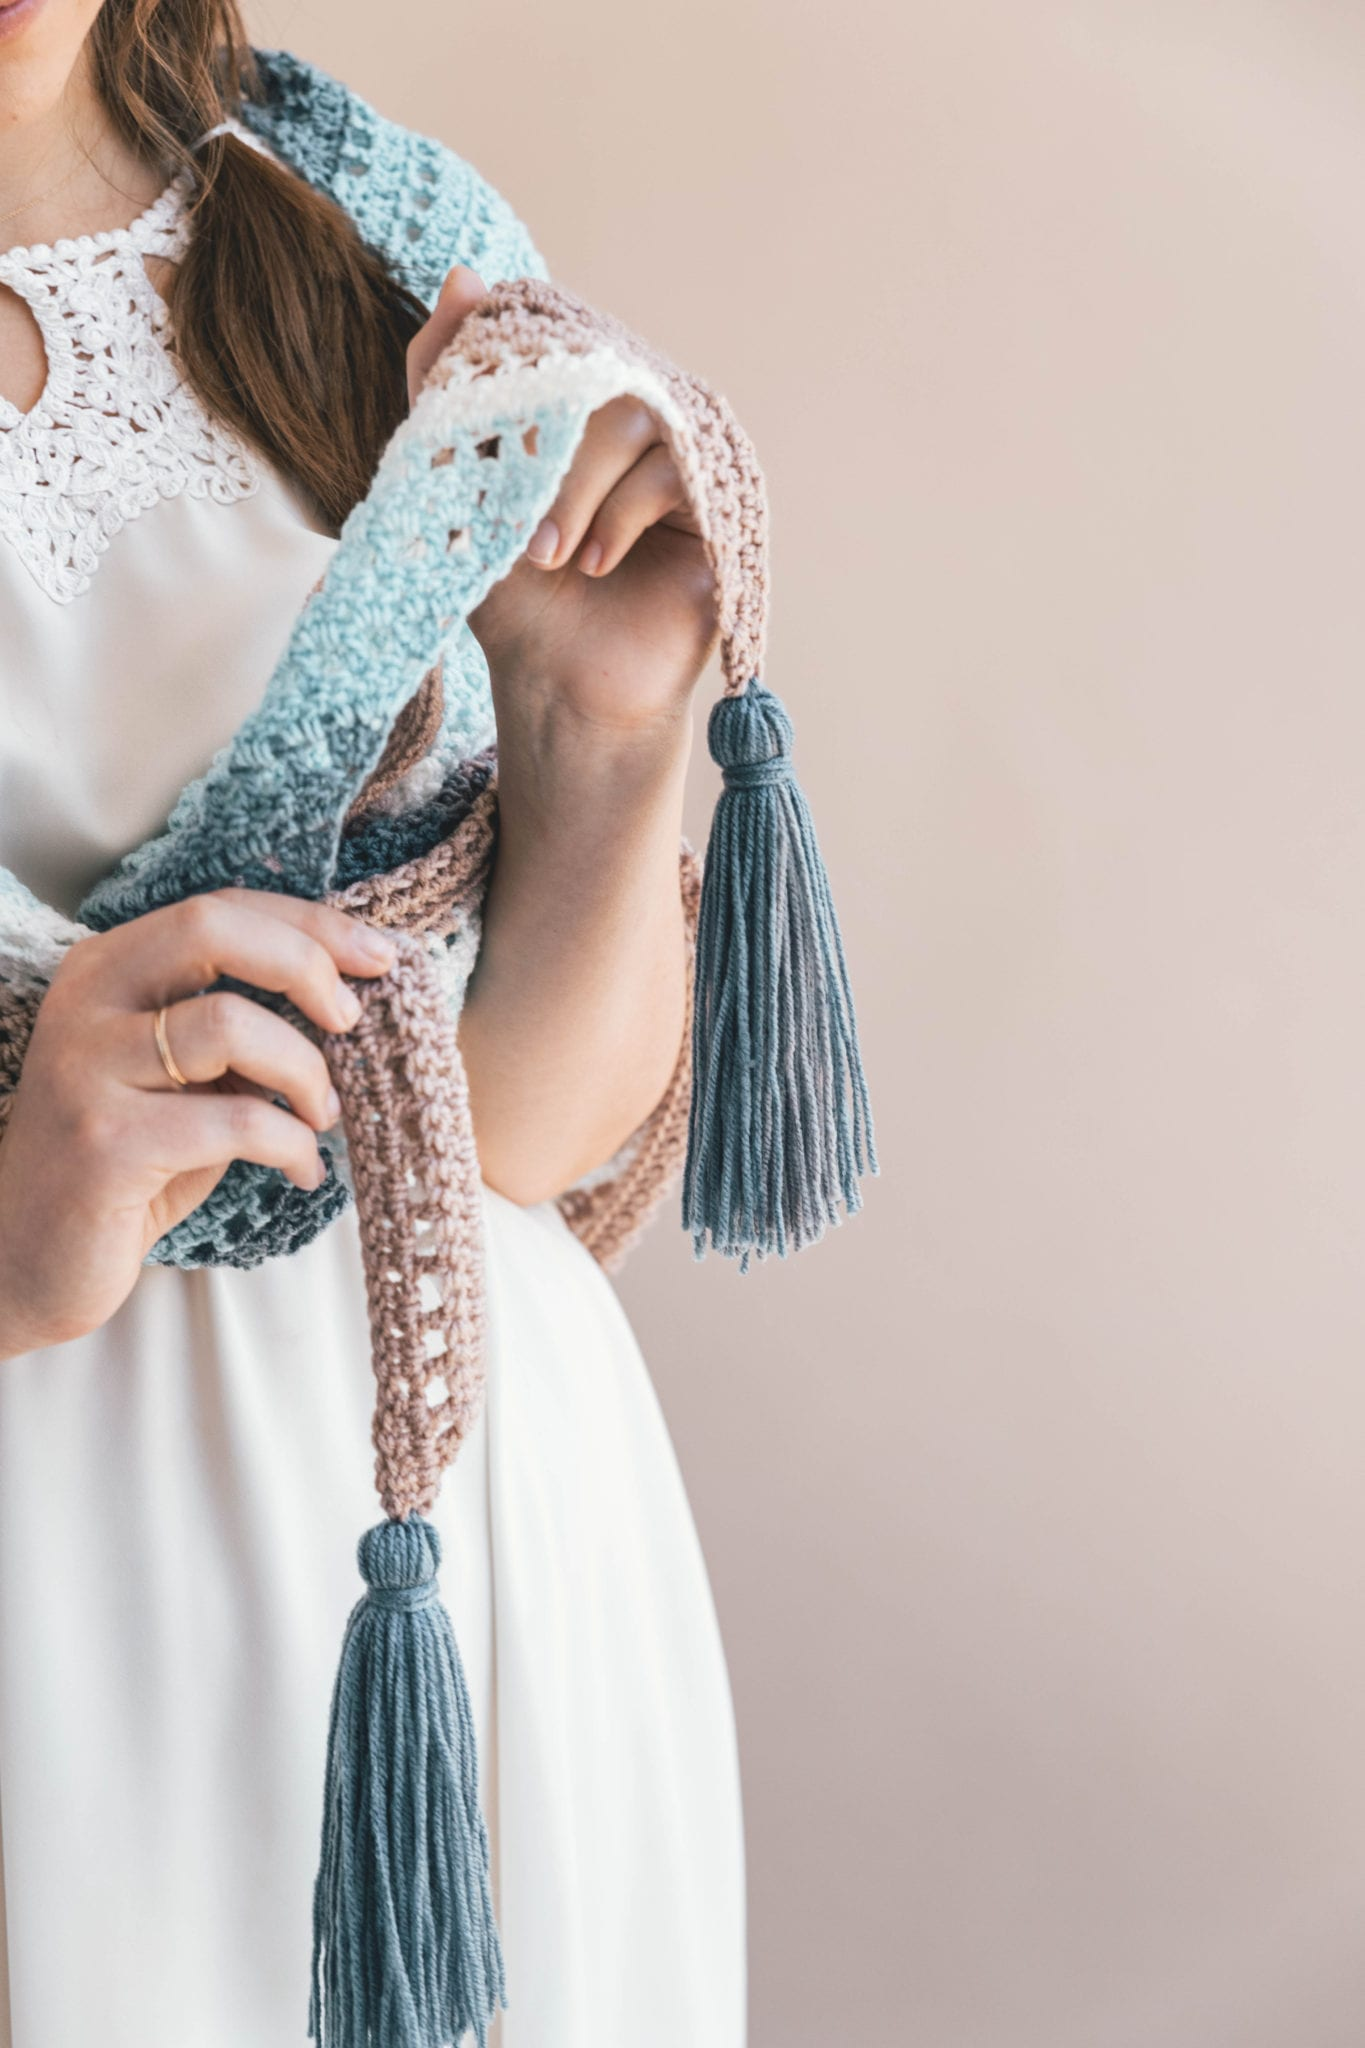 easy stitches and drapey tassels make for a effortless crochet wrap